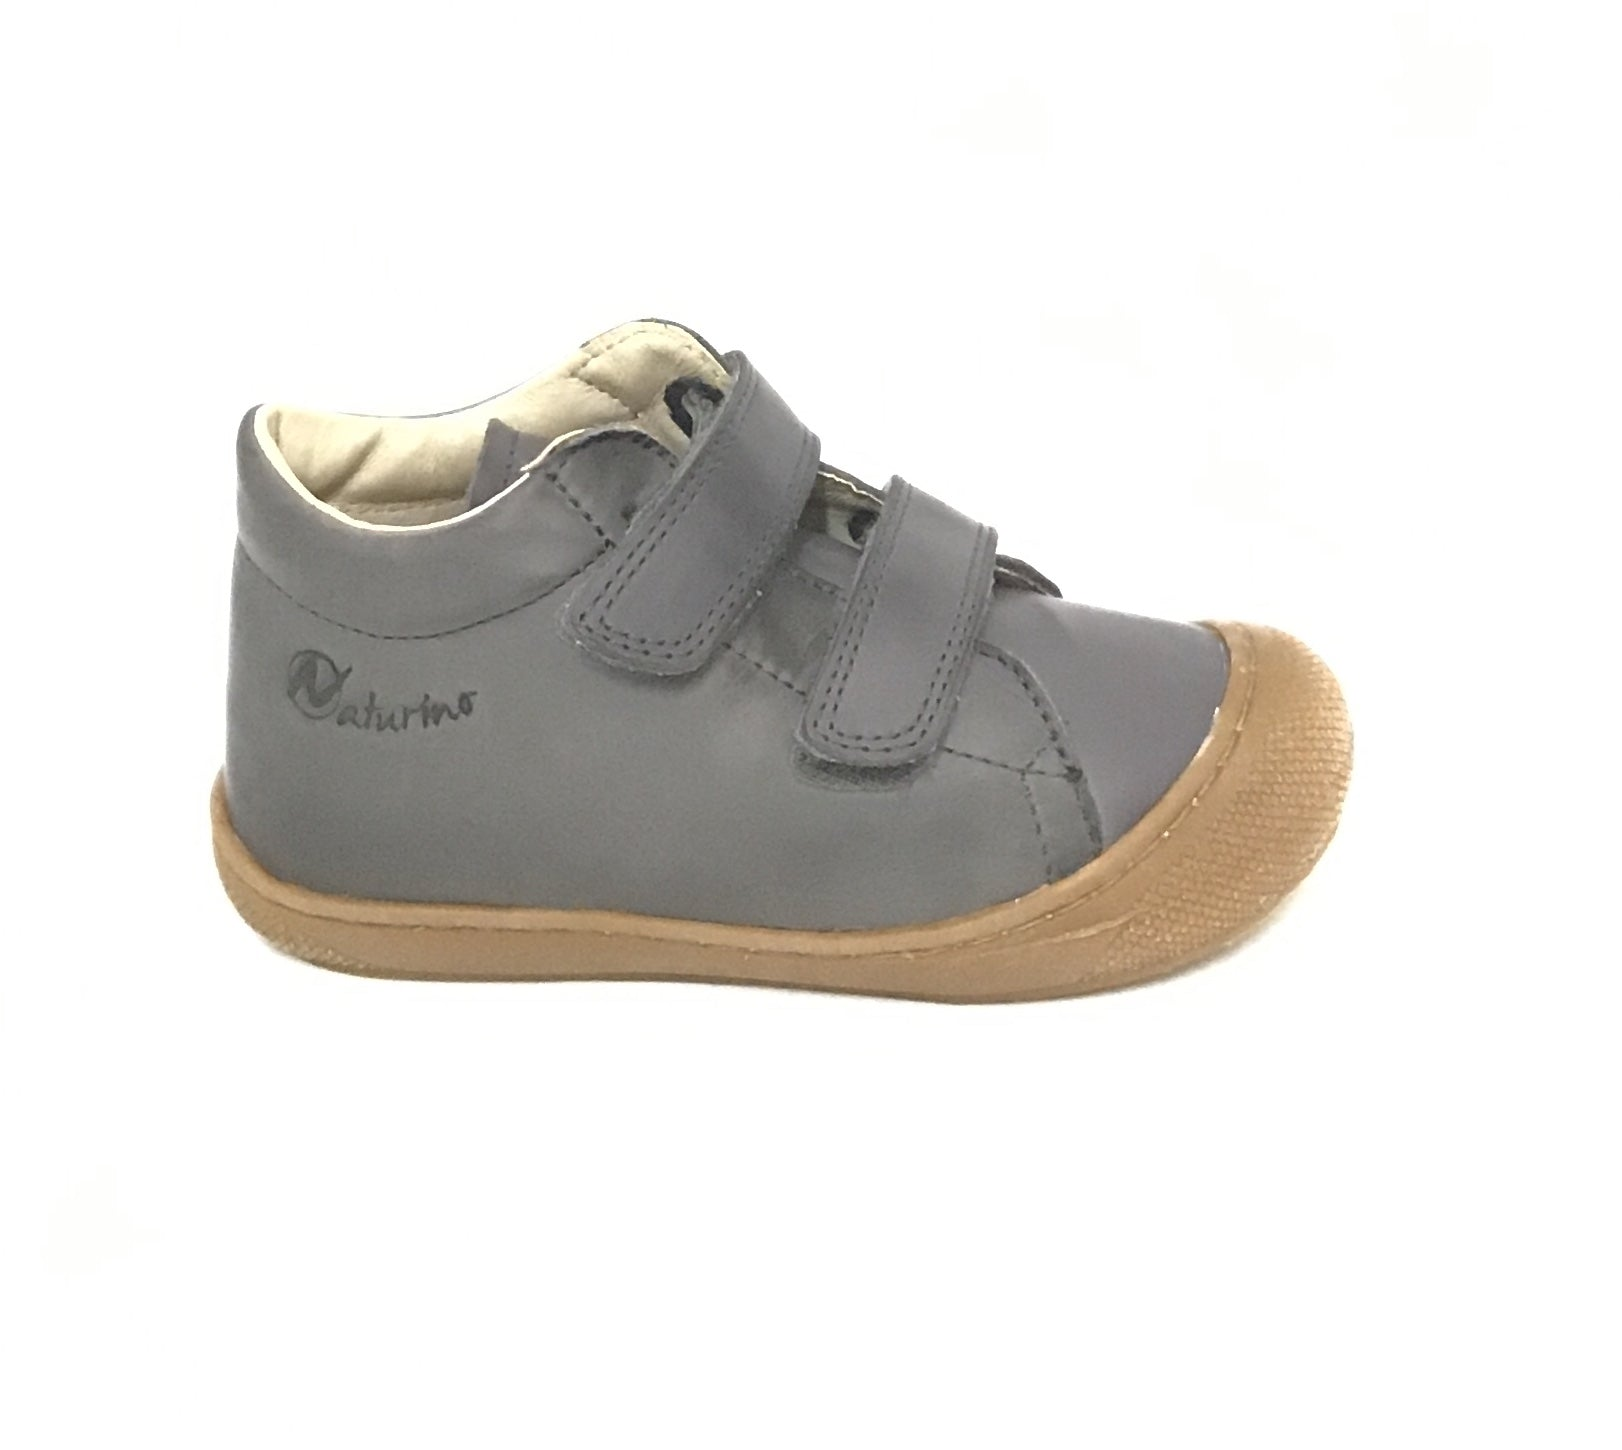 Naturino Charcoal Shoe with Double Velcro